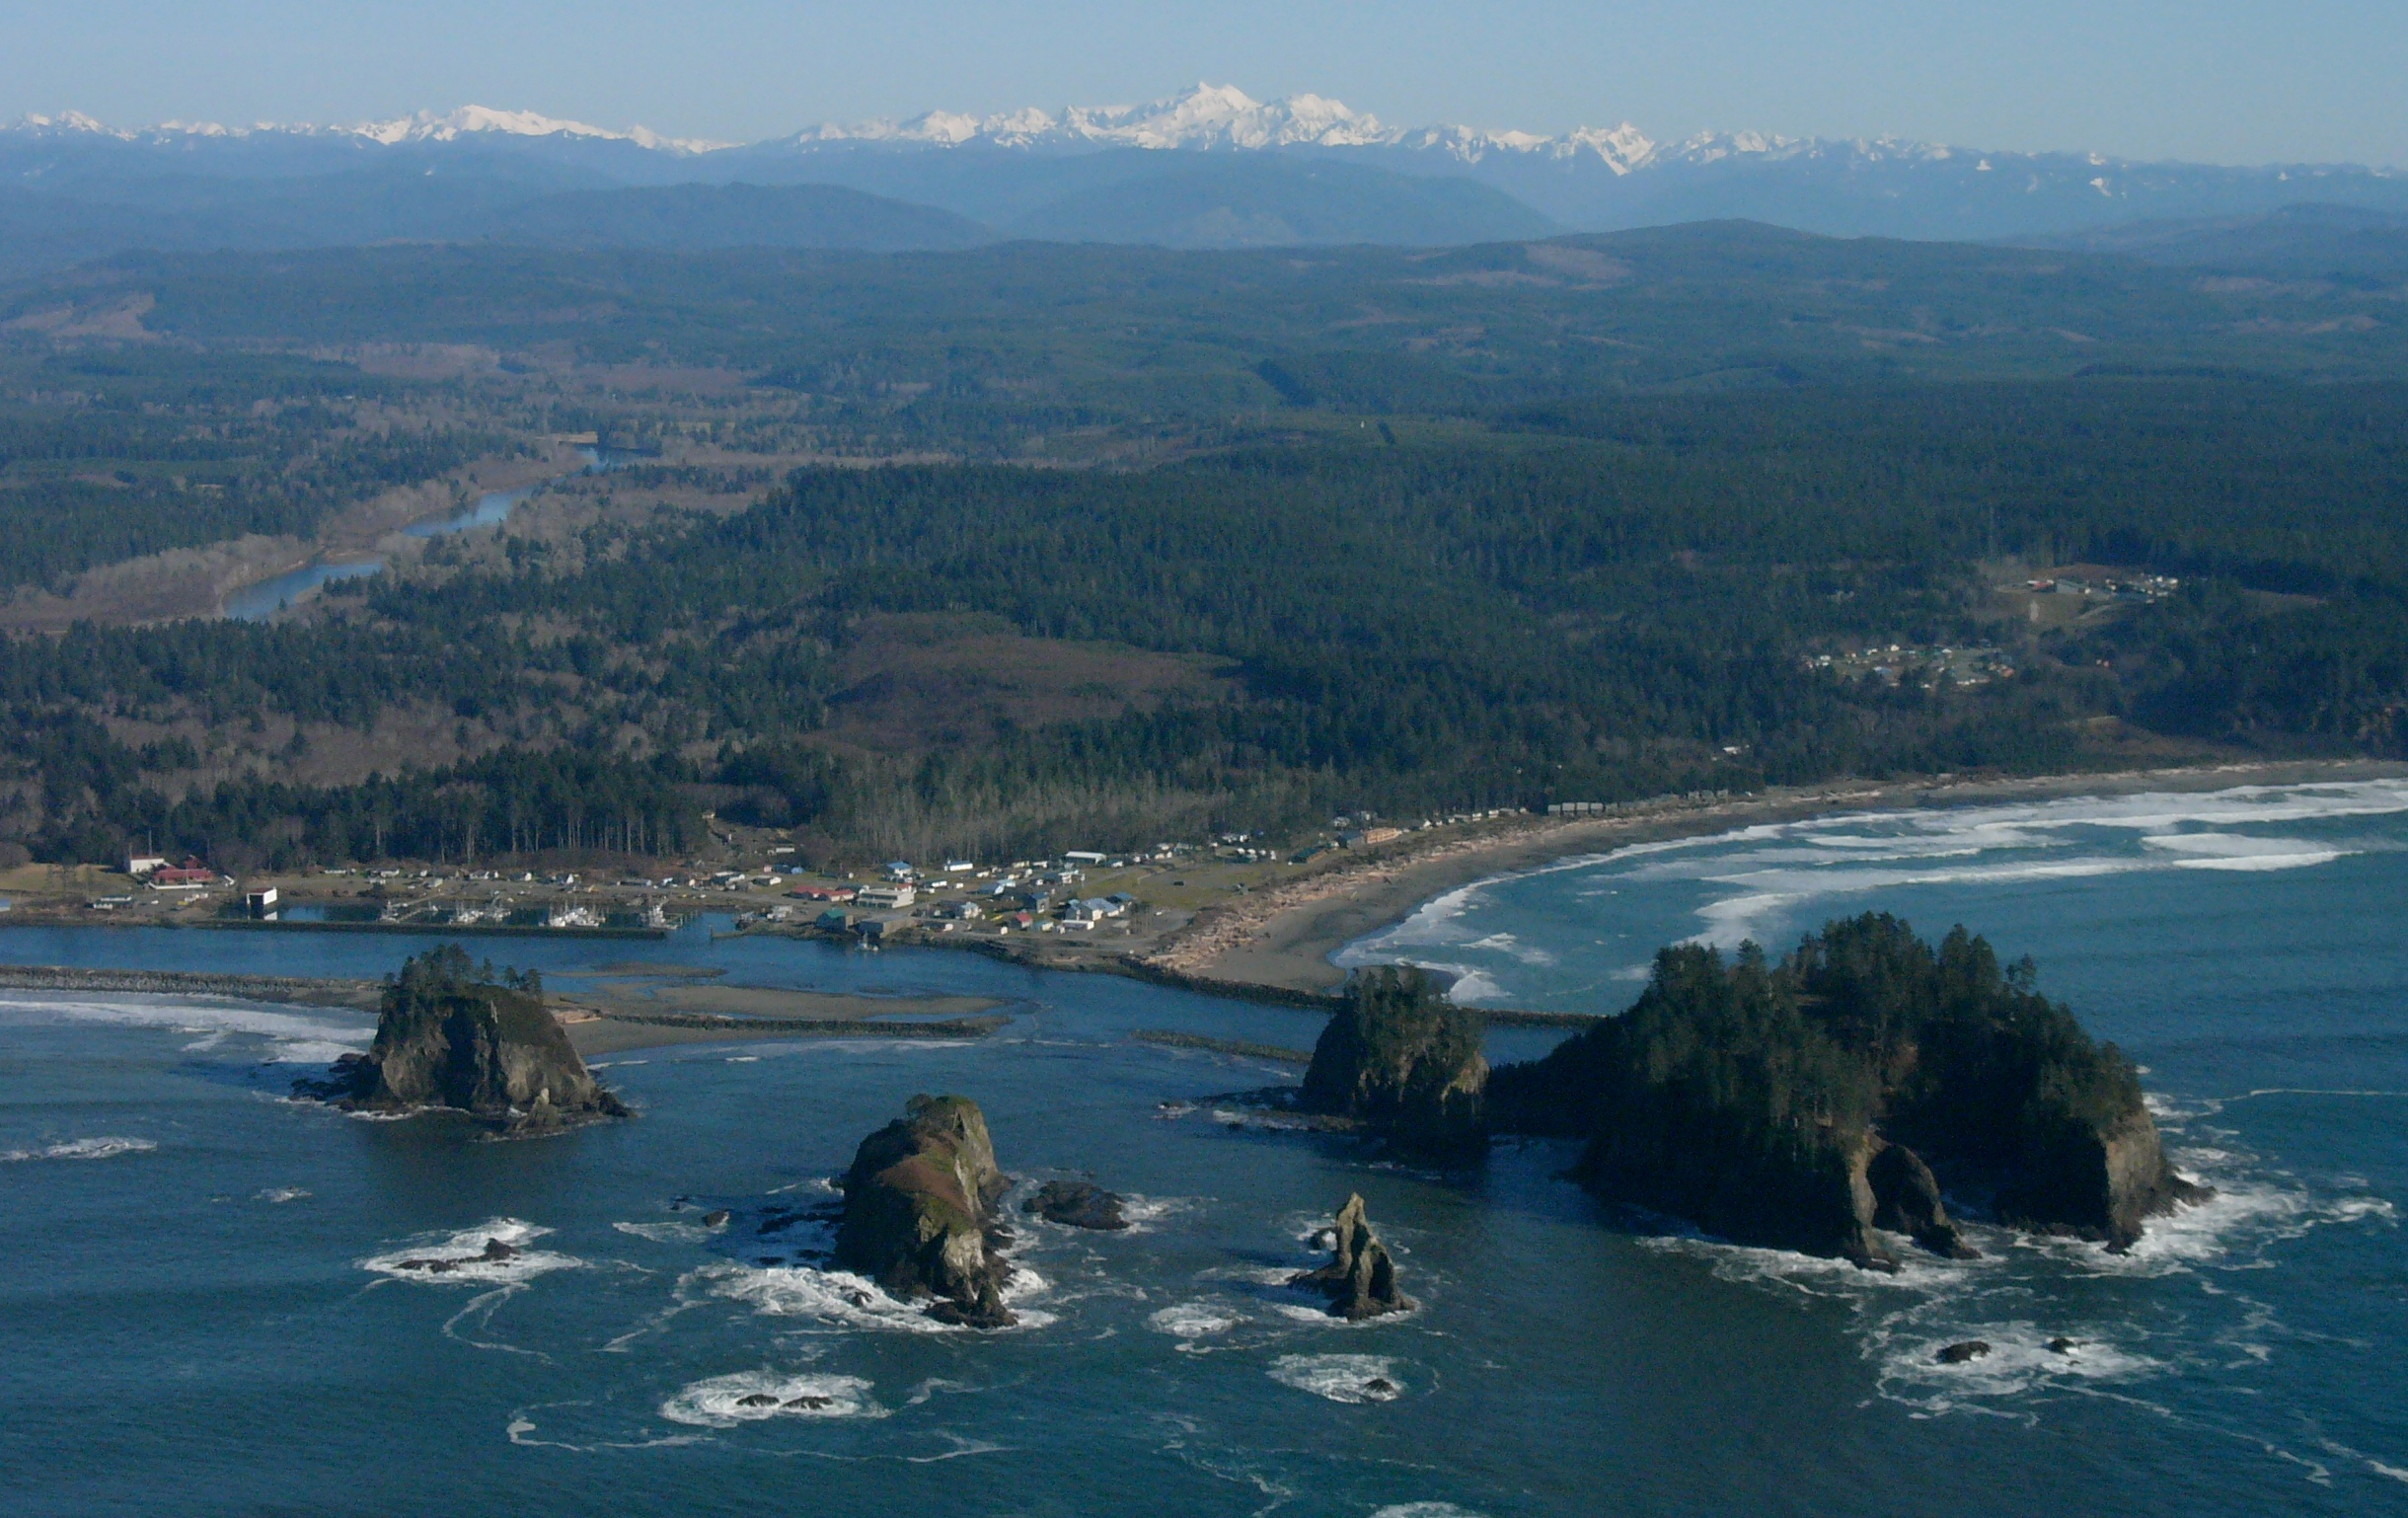 Quileute Tribe starts process to move village to safer ground in Washington